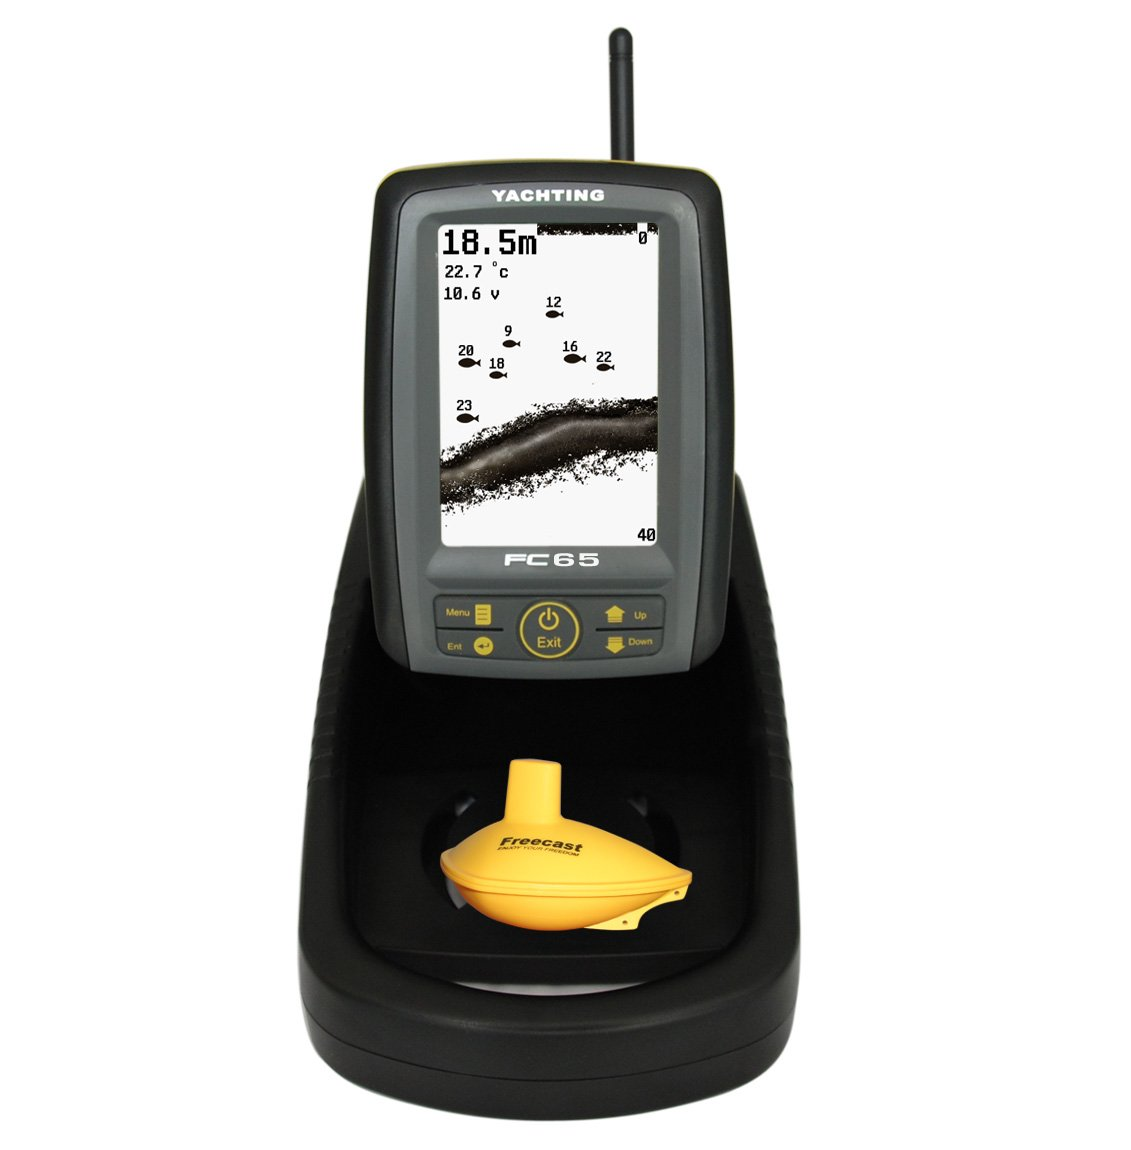 wireless fish finder fc65 - buy wireless fish finder product on, Fish Finder